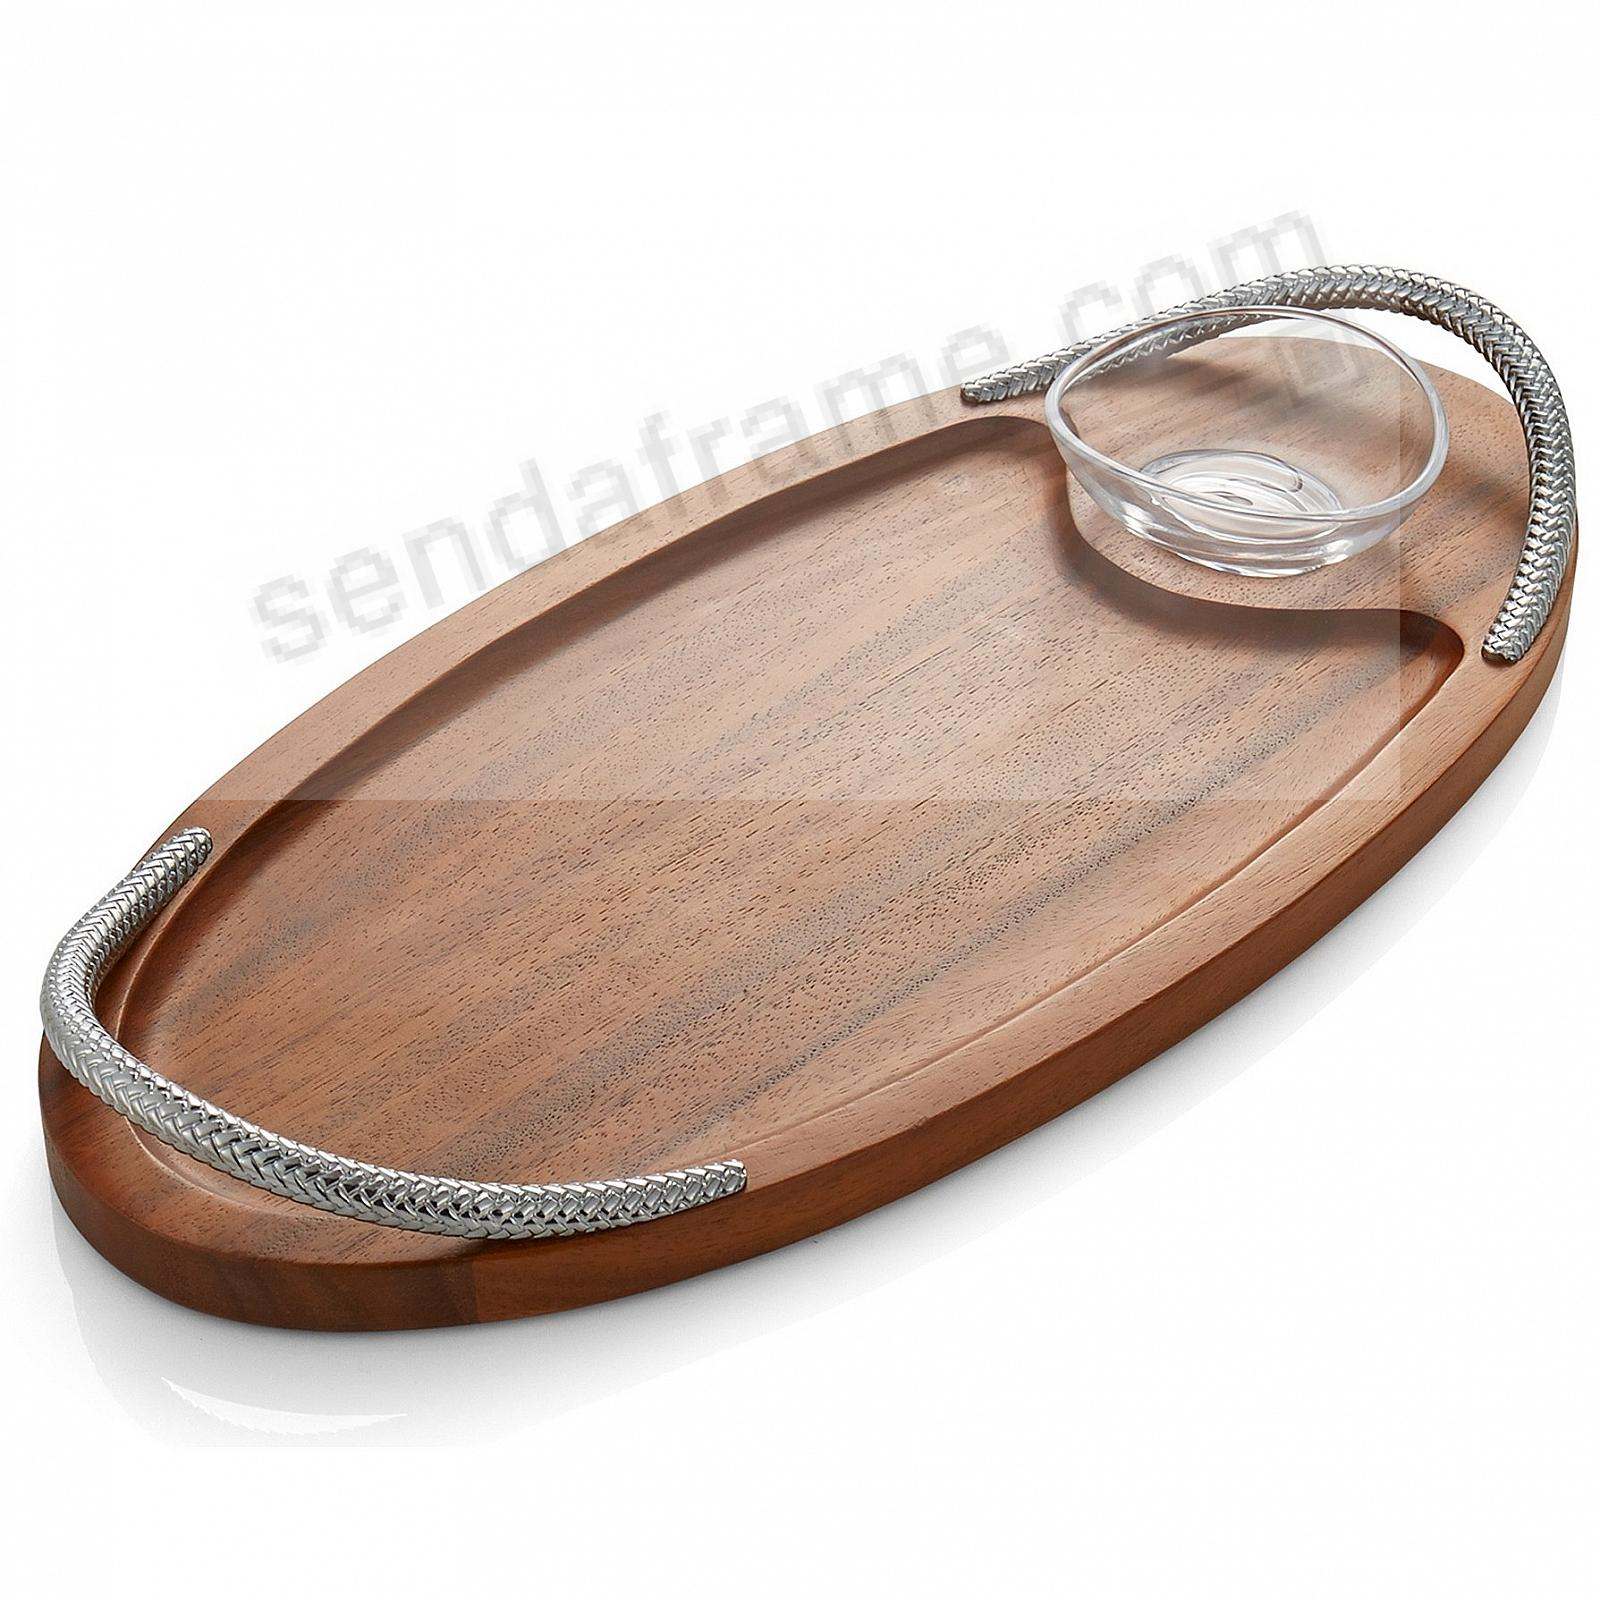 The BRAID SERVING BOARD w/DIPPING DISH crafted by Nambe®